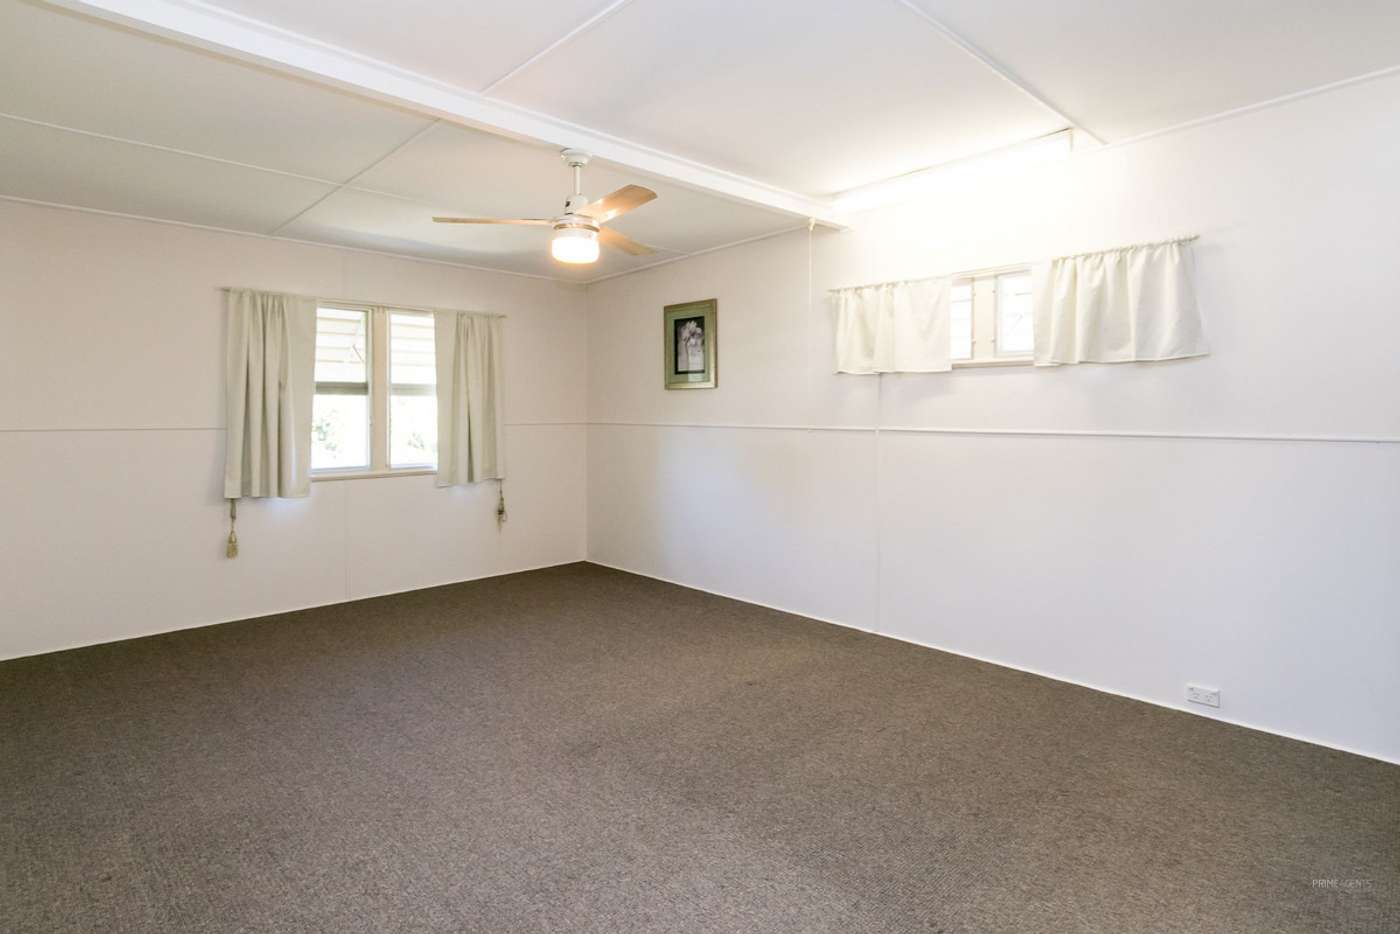 Sixth view of Homely house listing, 19 Ocean Street, Torquay QLD 4655